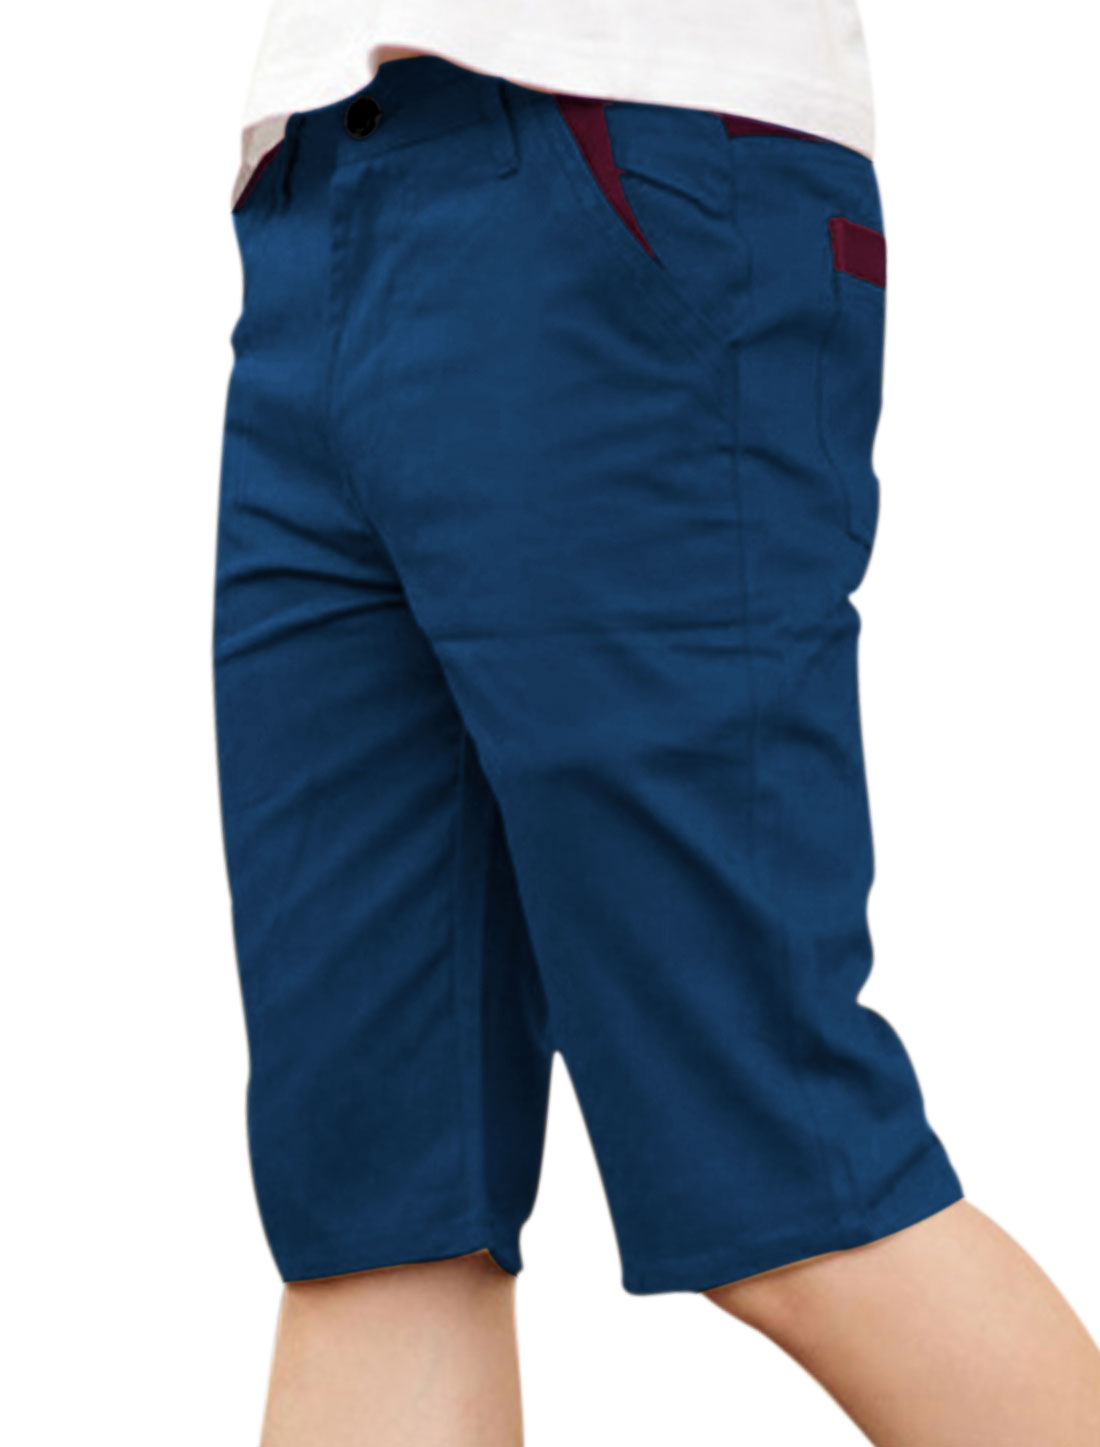 Men Belt Loop Zip Fly Panel Design Casual Shorts Navy Blue W32